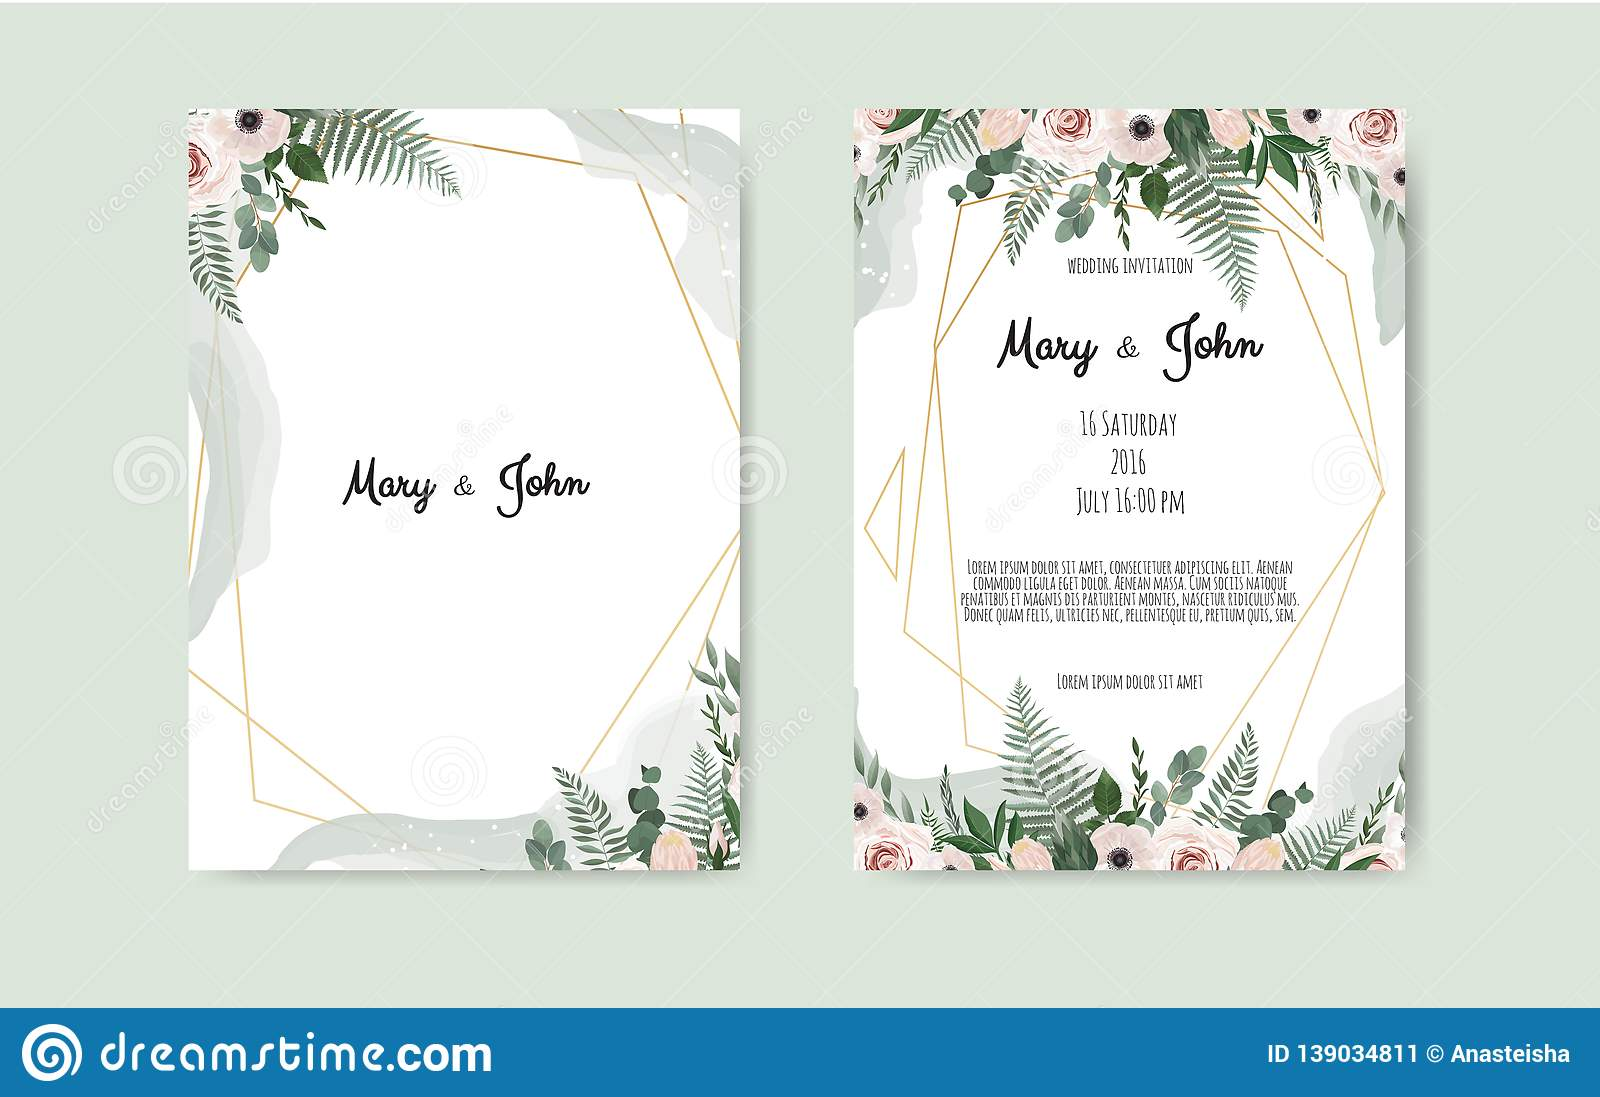 Botanical Wedding Invitation Card Template Design White And Pink Flowers On White Background Stock Vector Illustration Of Garden Golden 139034811